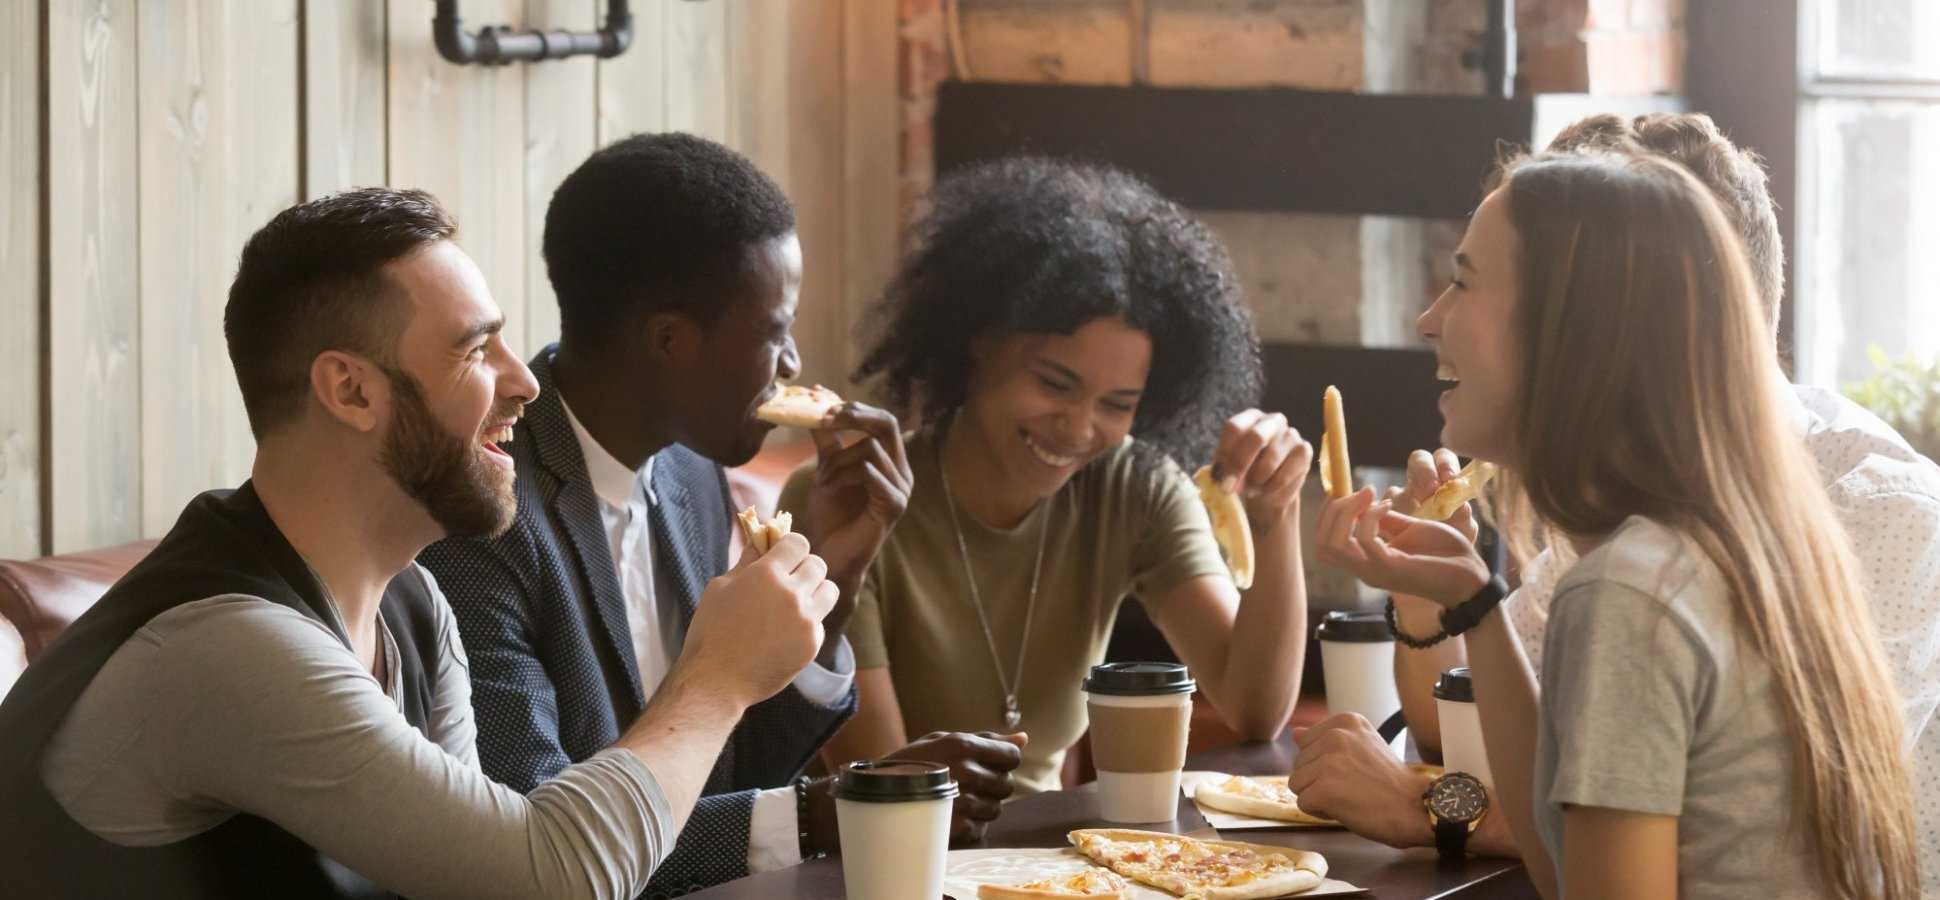 7 Tips for Making Socializing Much Less Painful for Introverts Who Need to Network